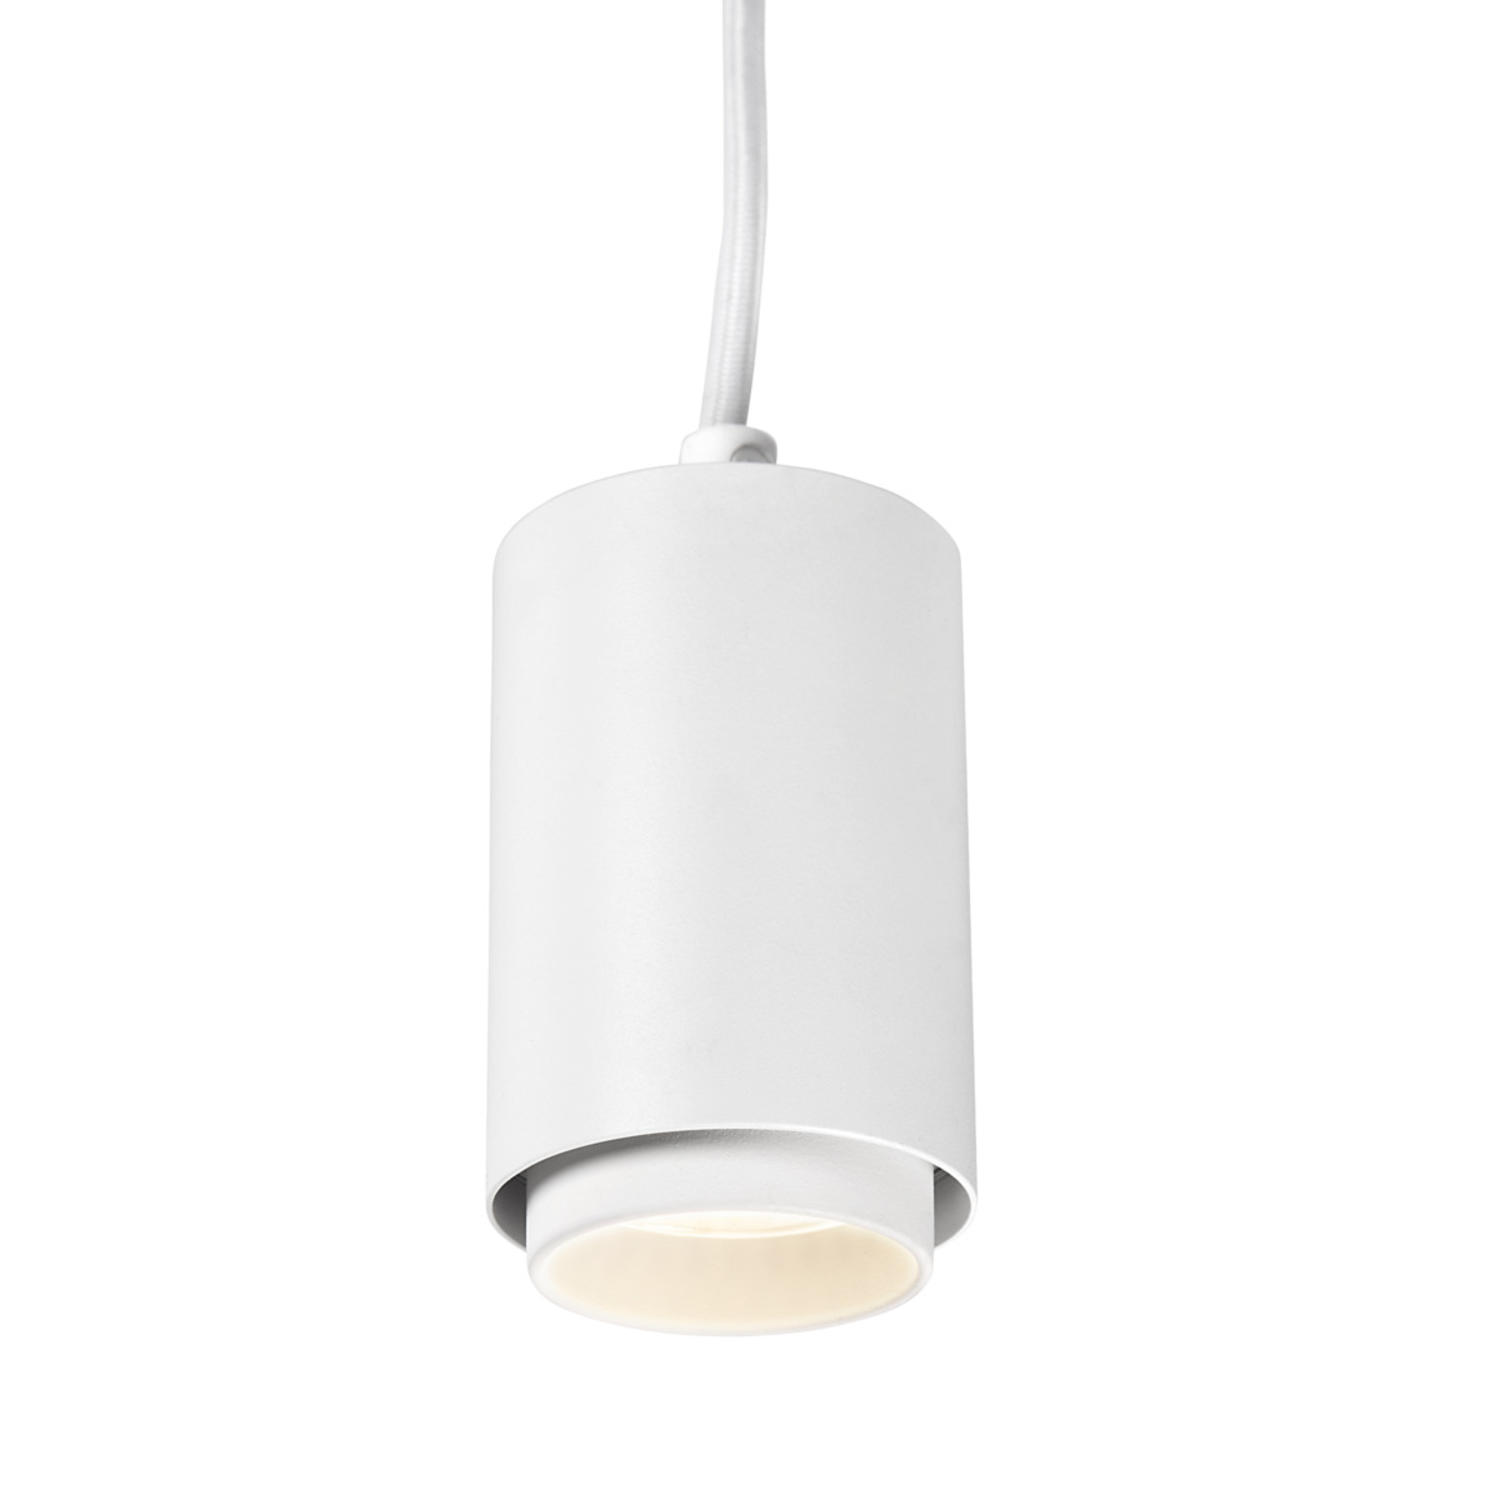 Focus Pendant Micro 1-phase 36° White 2700K